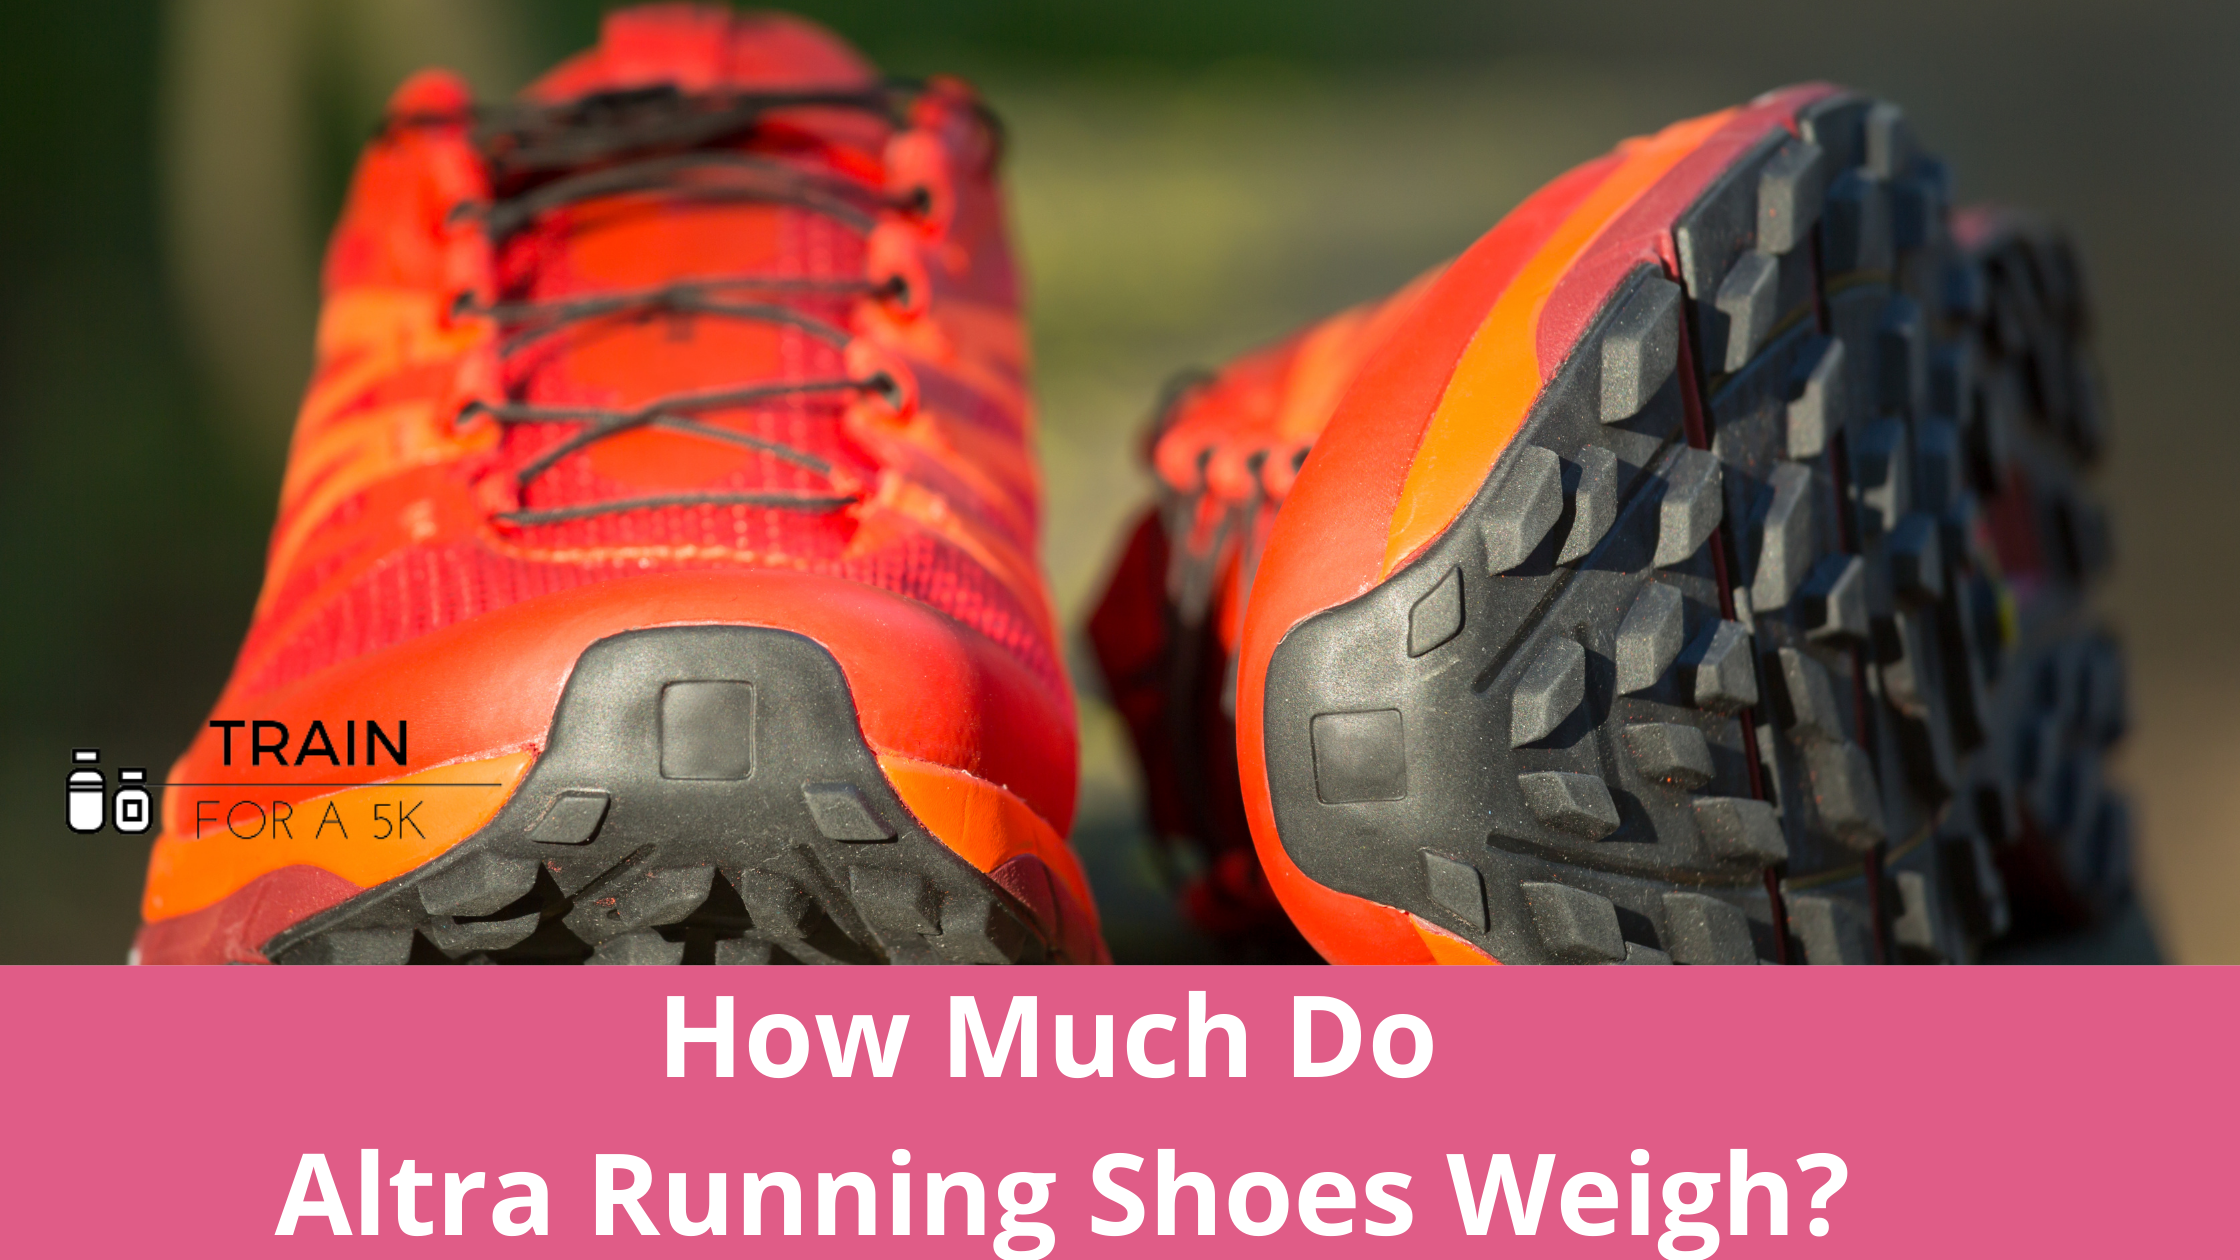 The average weight of an Altra running shoe is 9.19 ounces in men's and 7.87 ounces in women's. The heaviest Altra running shoe is the Altra Paradigm 5.0 and the lightest is the Altra Vanish-R which weighs 4.1 ounces.